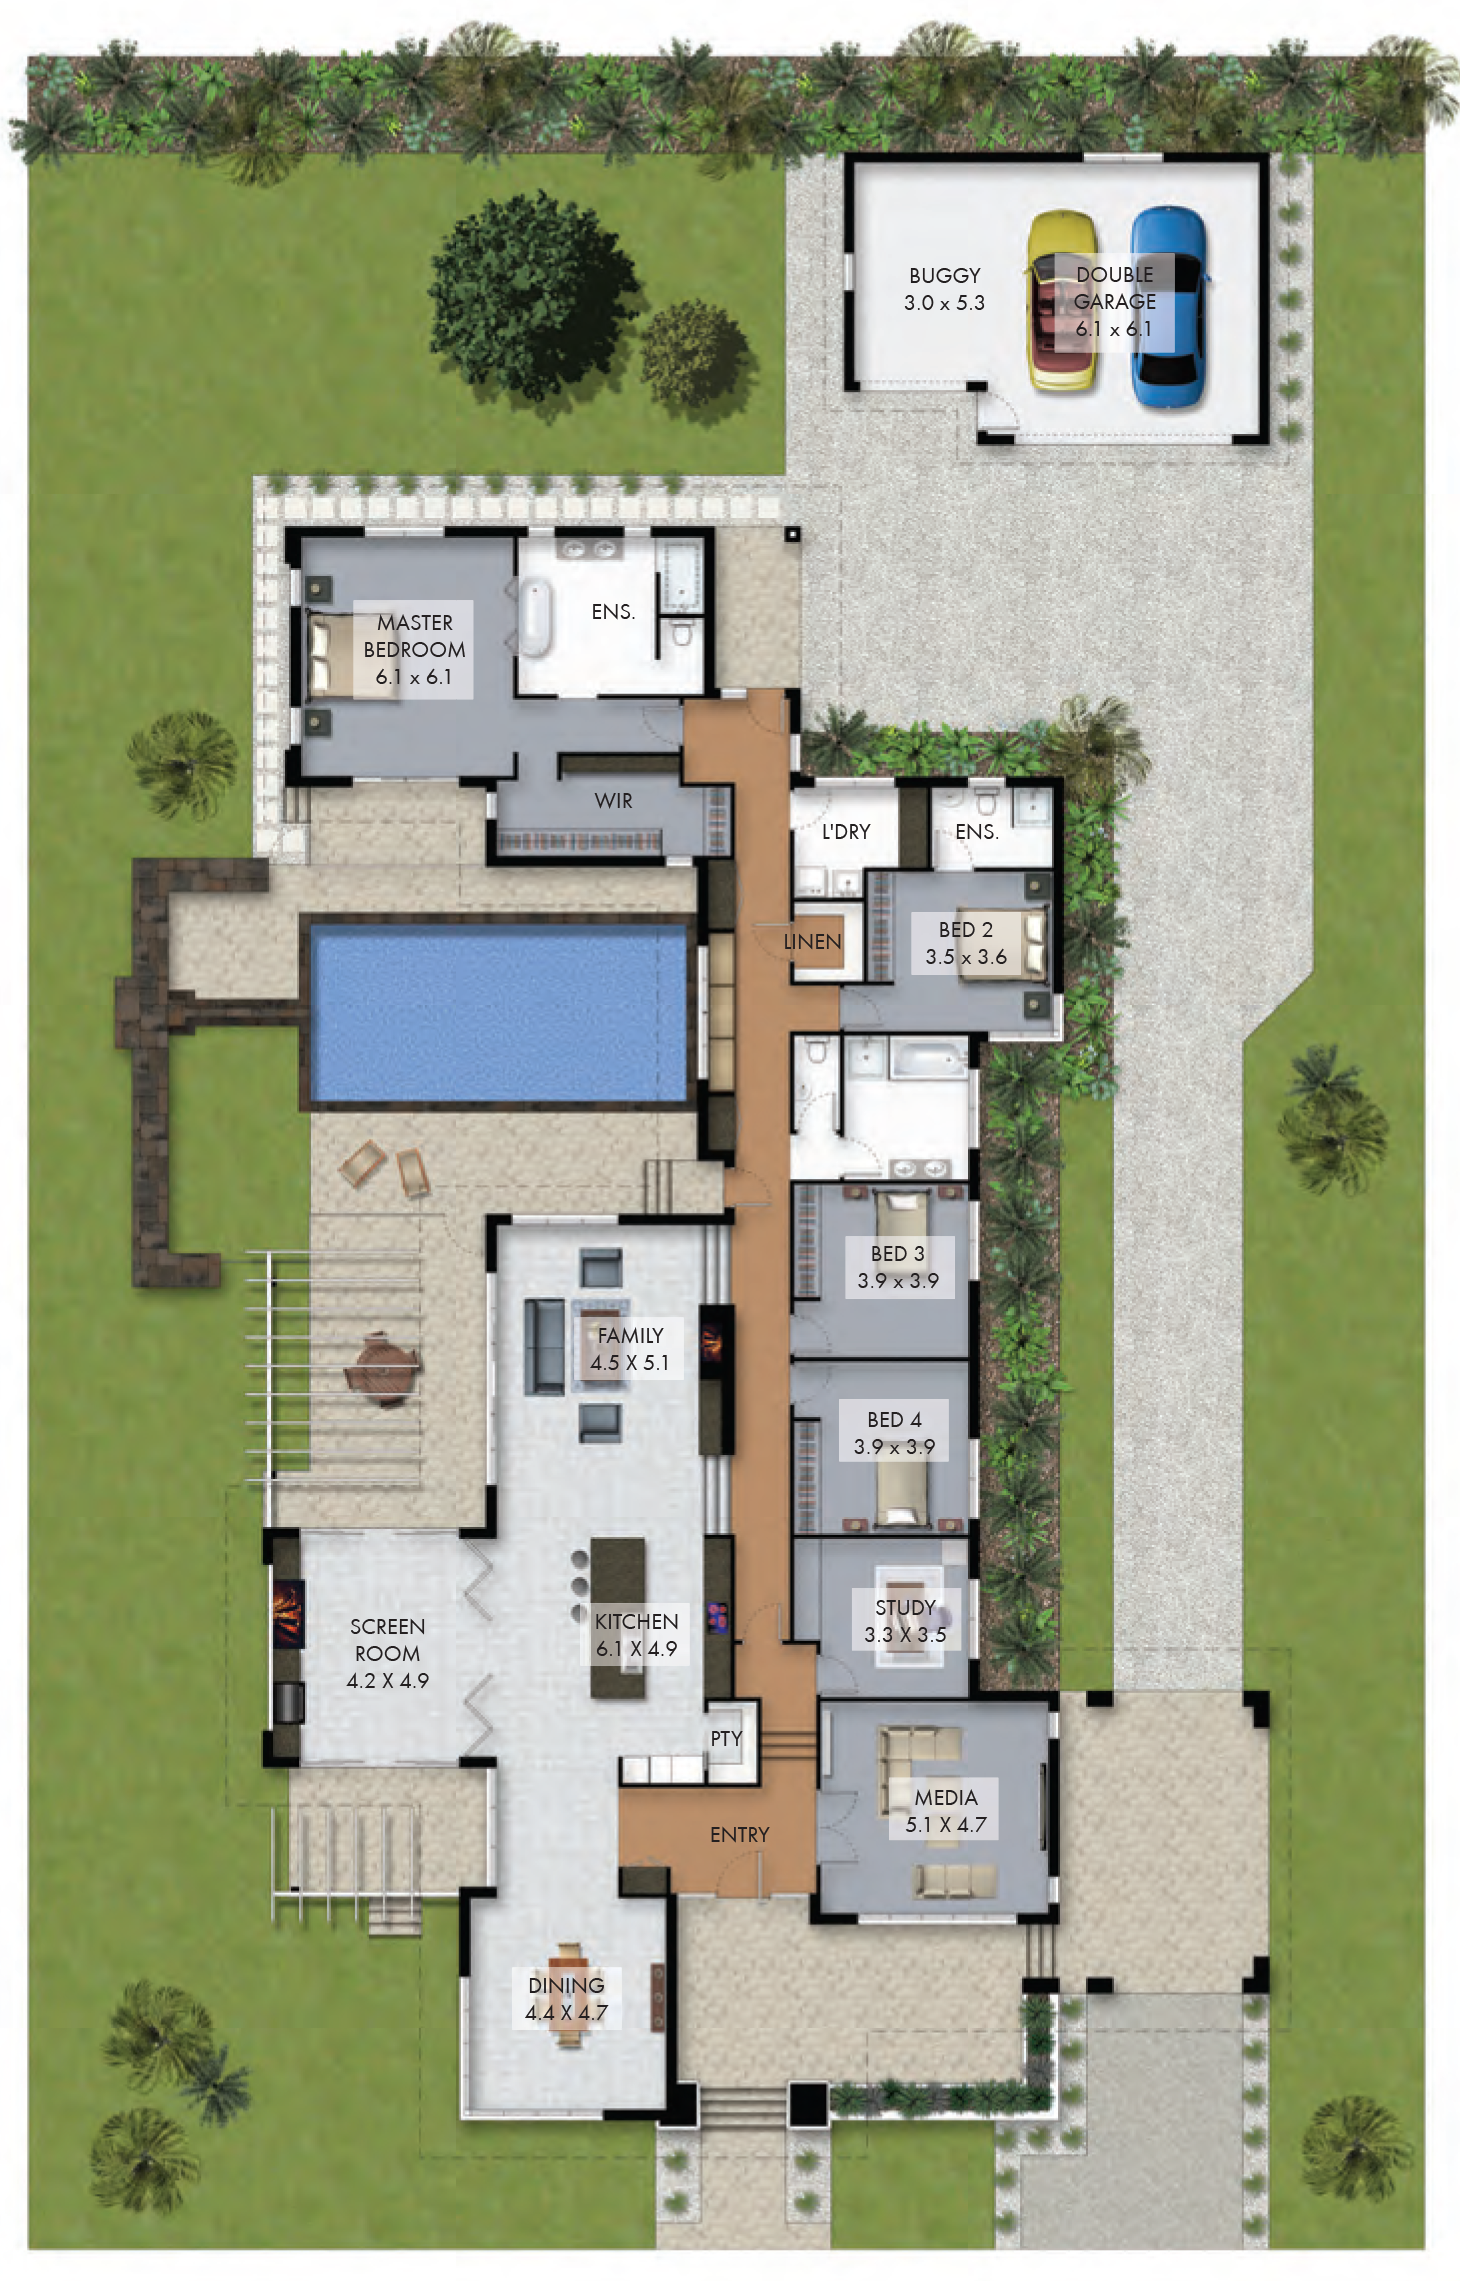 Its floor plan friday again and today i have this luxury 4 bedroom family home with a pool to share with you i think the layout is pretty awesome get rid